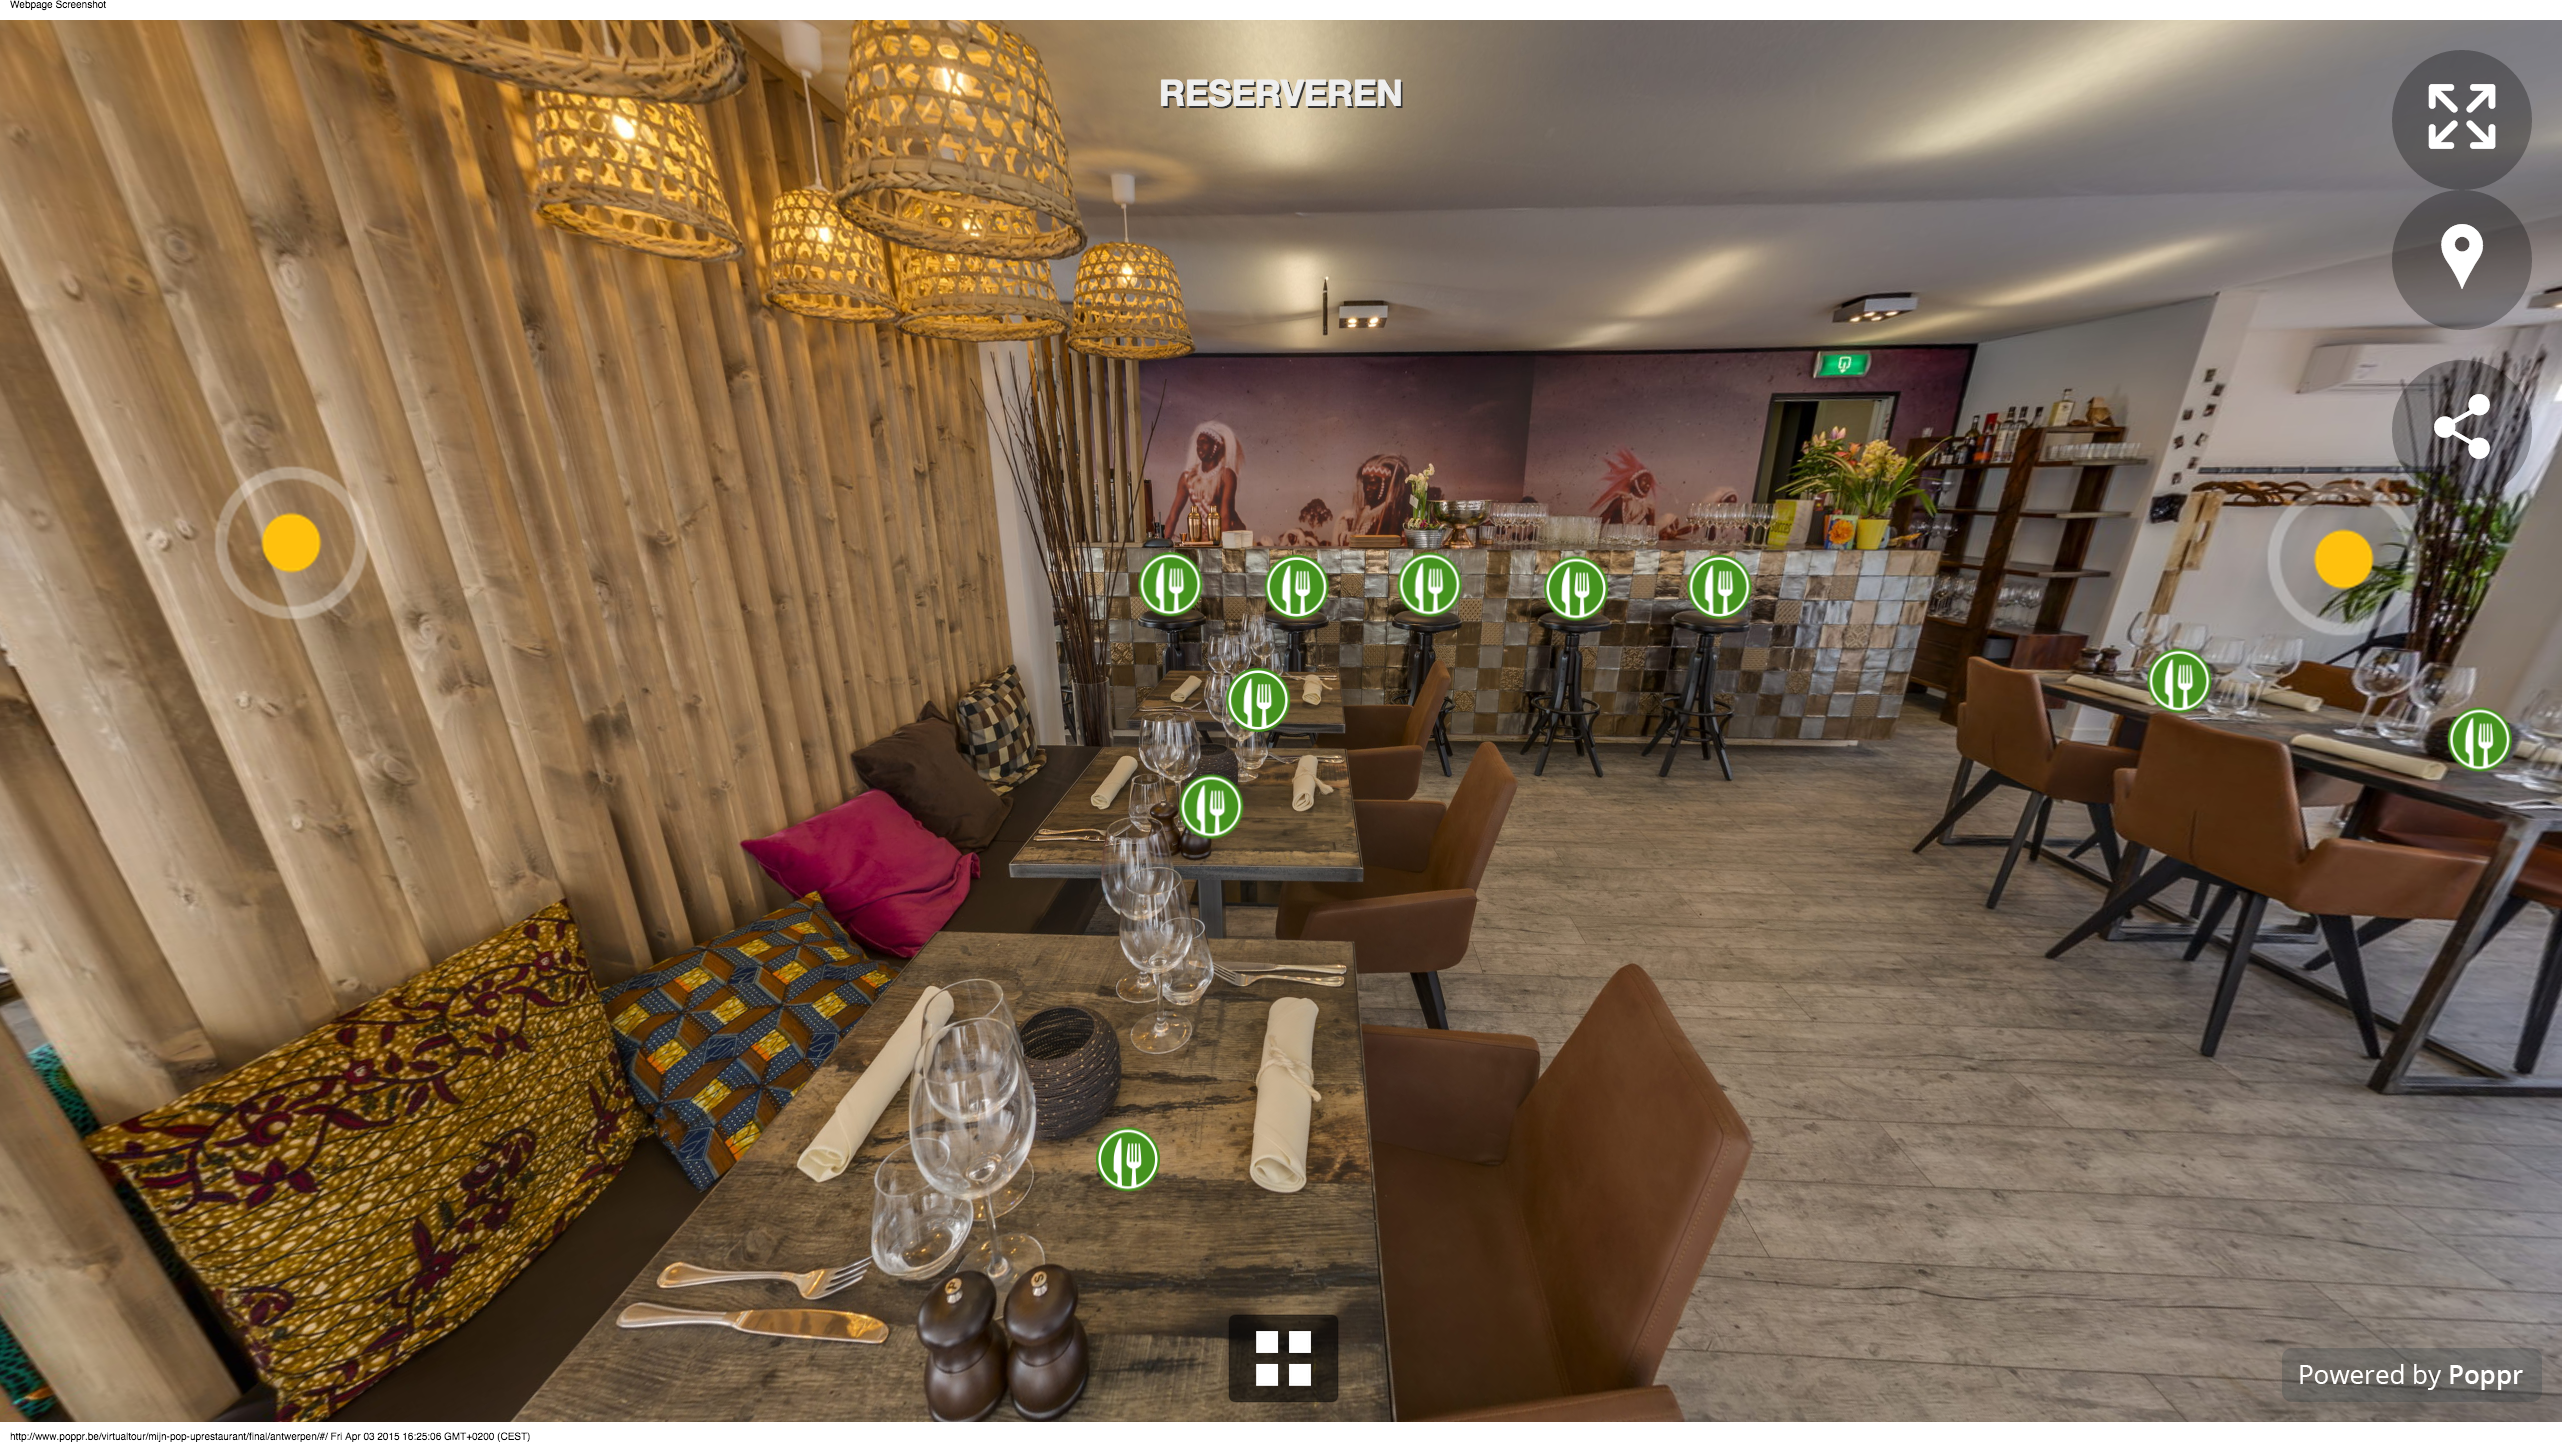 Virtual Tour Mijn Pop-uprestaurant Virtuele Restaurant Reservaties VTM 2015